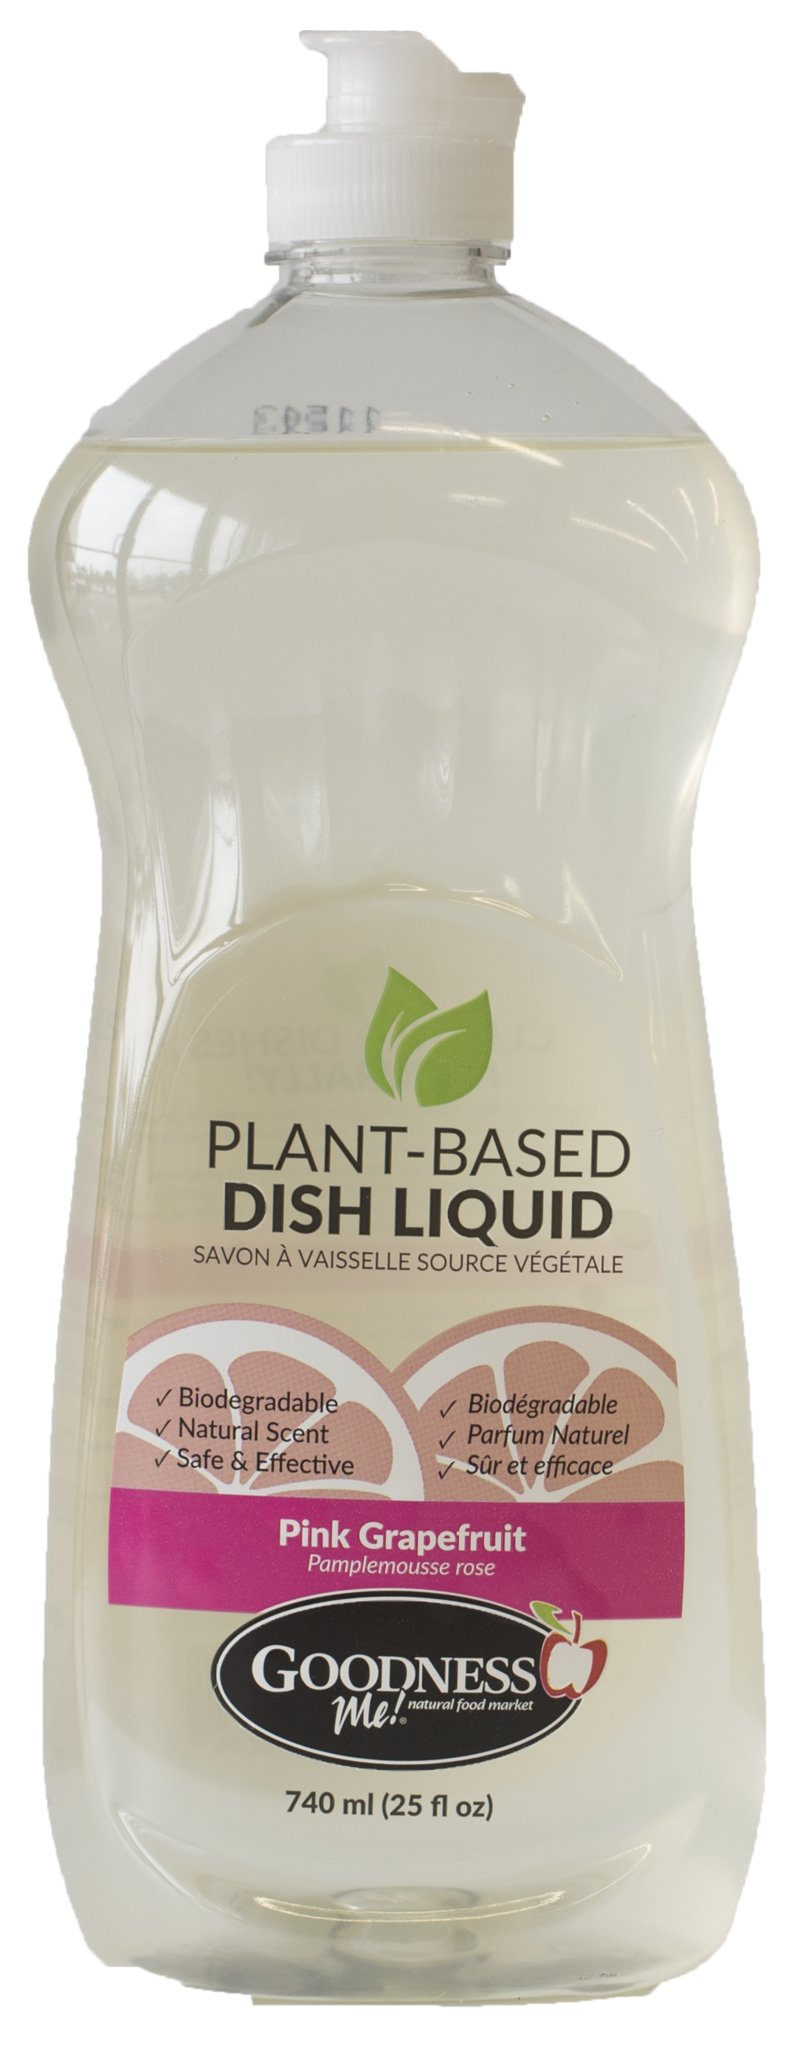 Healthy Lifestyles - Goodness Me! - Dish Soap Pink Grapefruit - 740ml